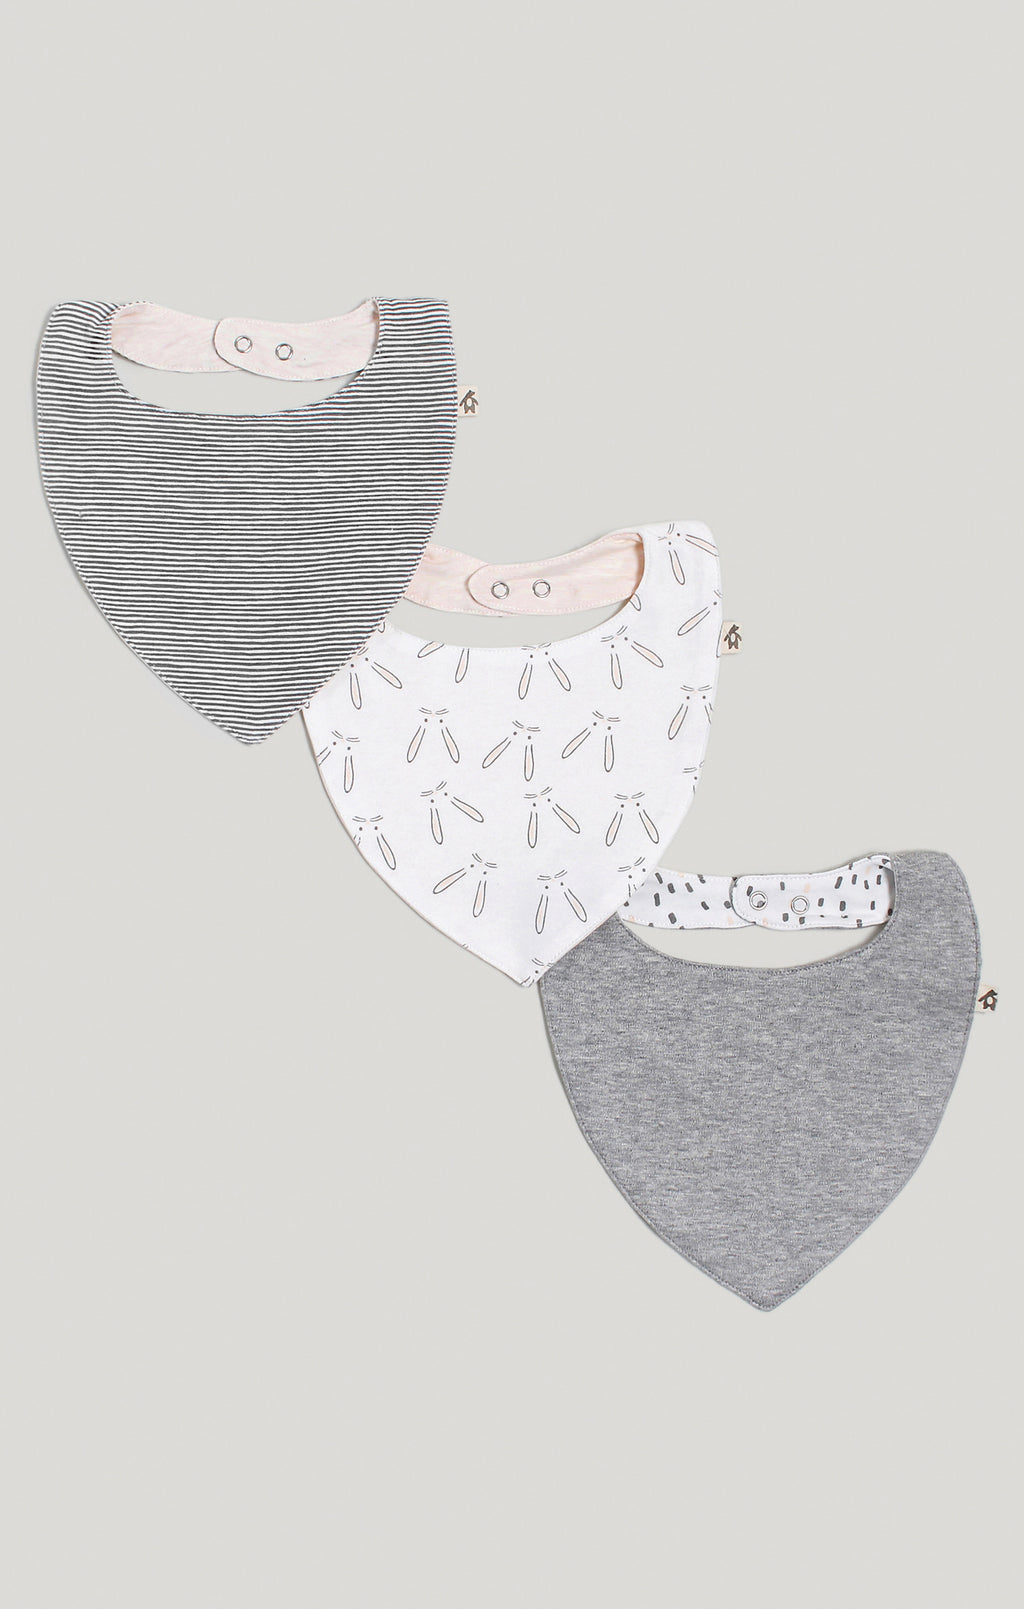 Bib - 3 Pk of Baby Girl Reversible Bibs | Baby Accessories